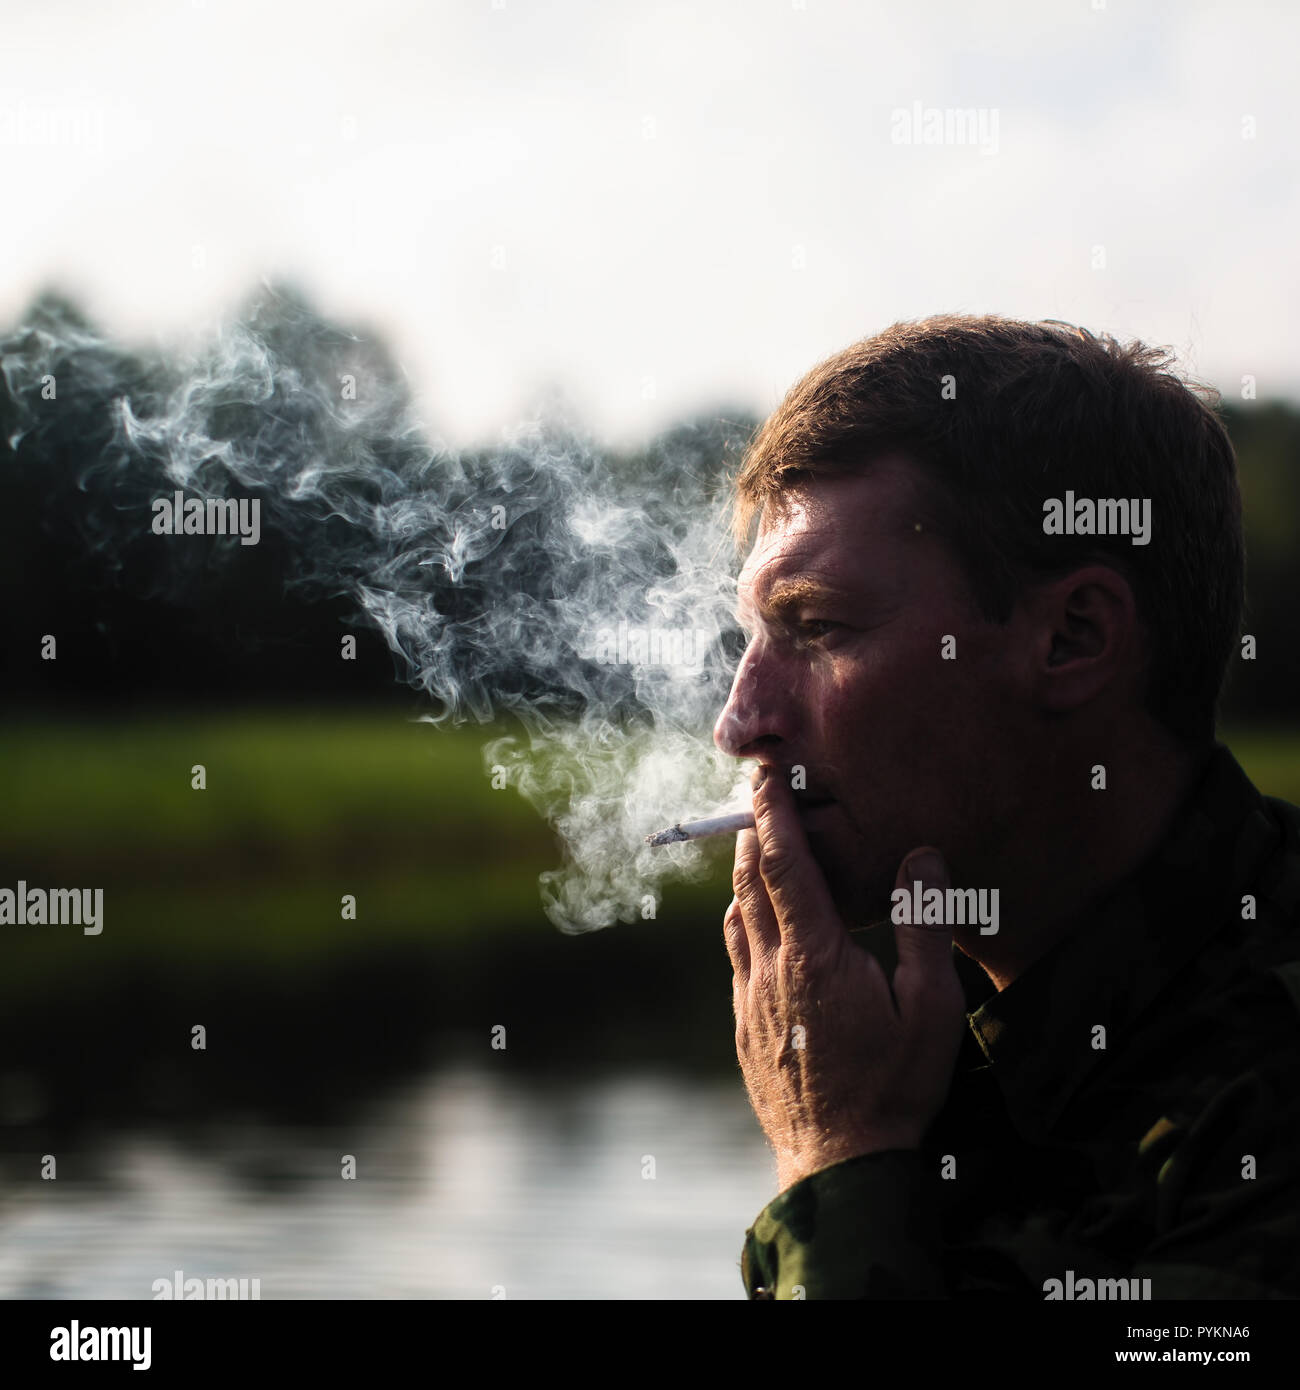 Man smoking outdoor, close-up. Smoke in the background light. - Stock Image